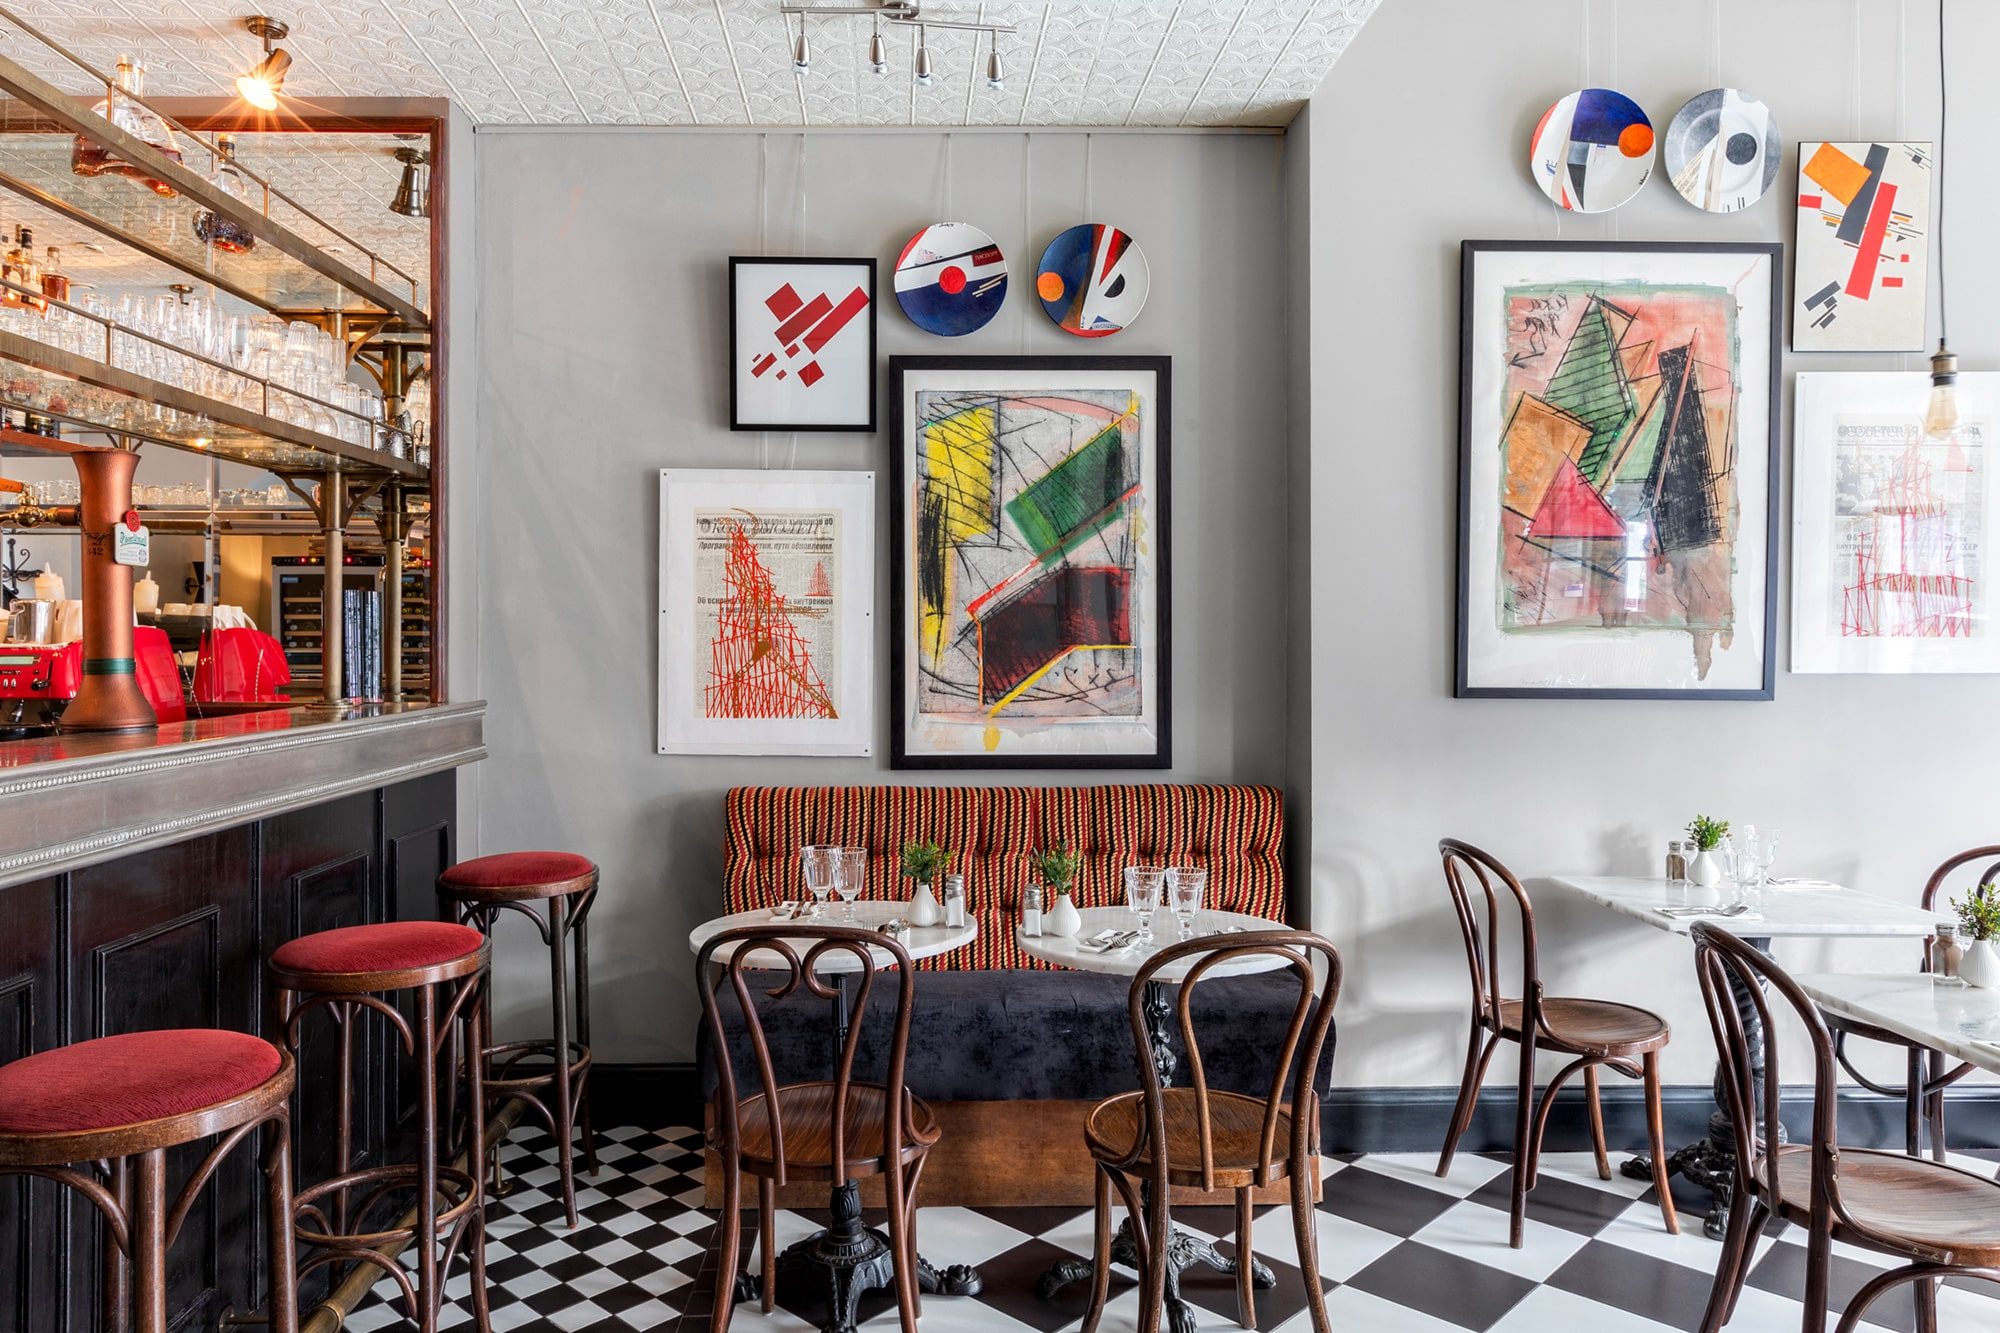 Interior shot of a restaurant; modern art prints on grey walls; corner of the bar and bar stools; tables with marble tops and wooden chairs